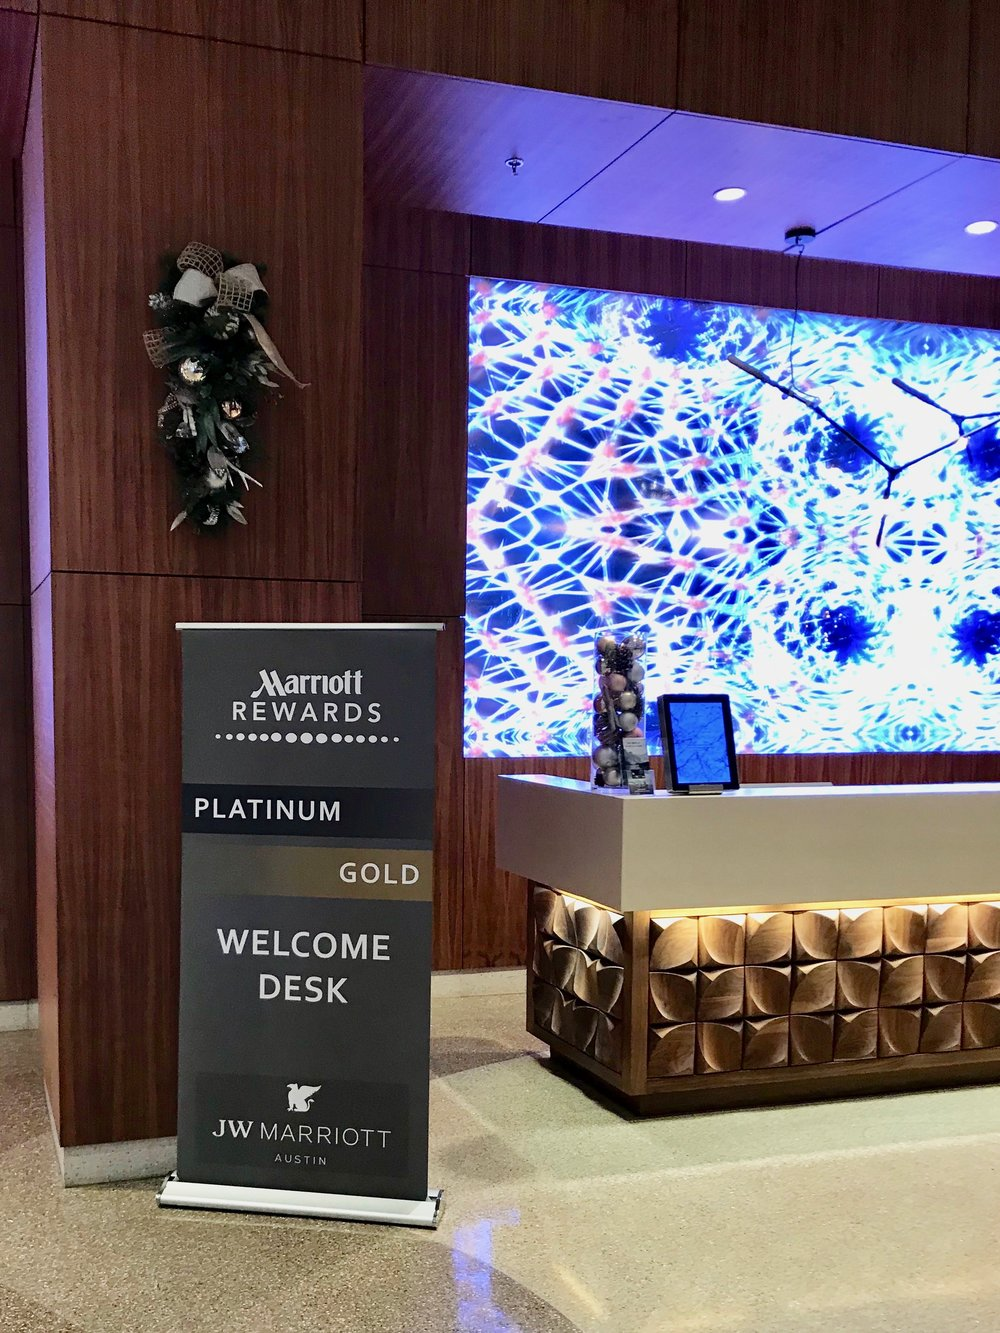 There is a check-in desk reserved for Marriott Rewards Platinum and Gold Elite members